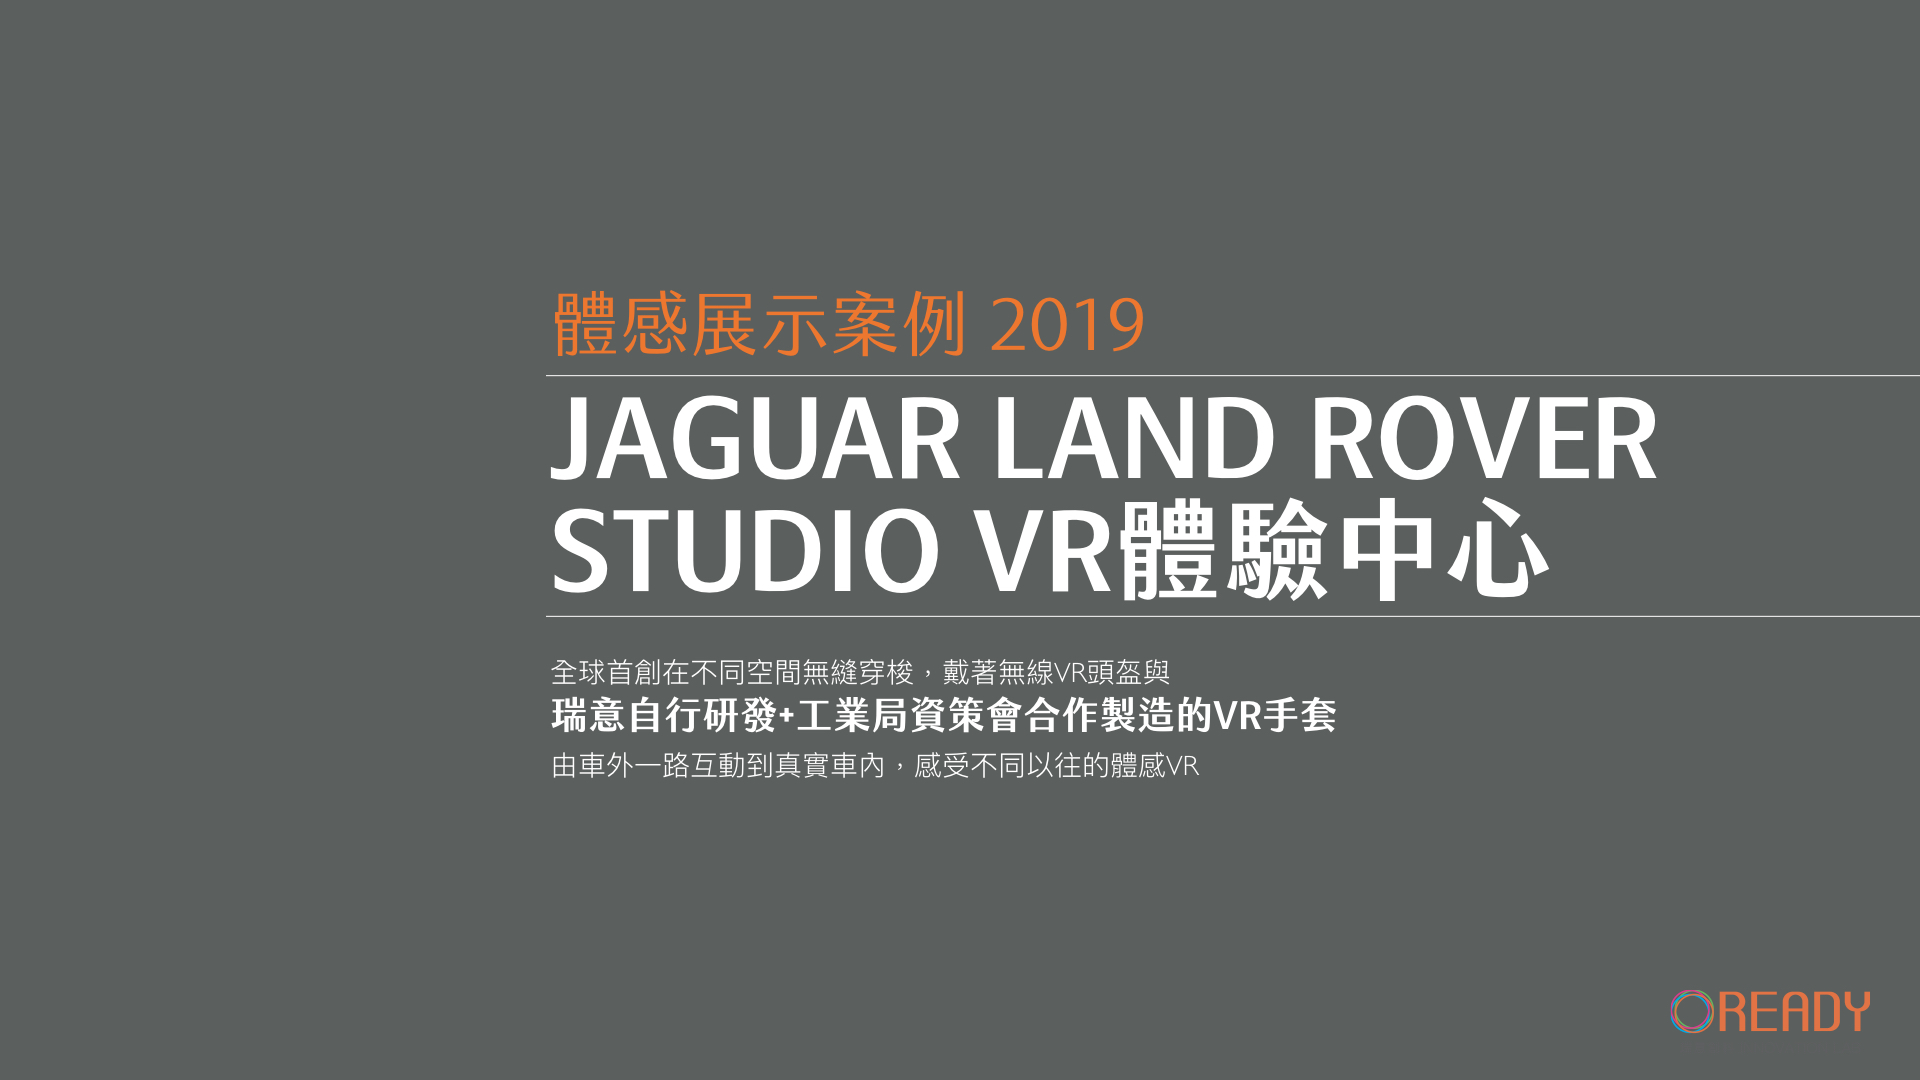 JAGUAR LAND ROVER STUDIO VR